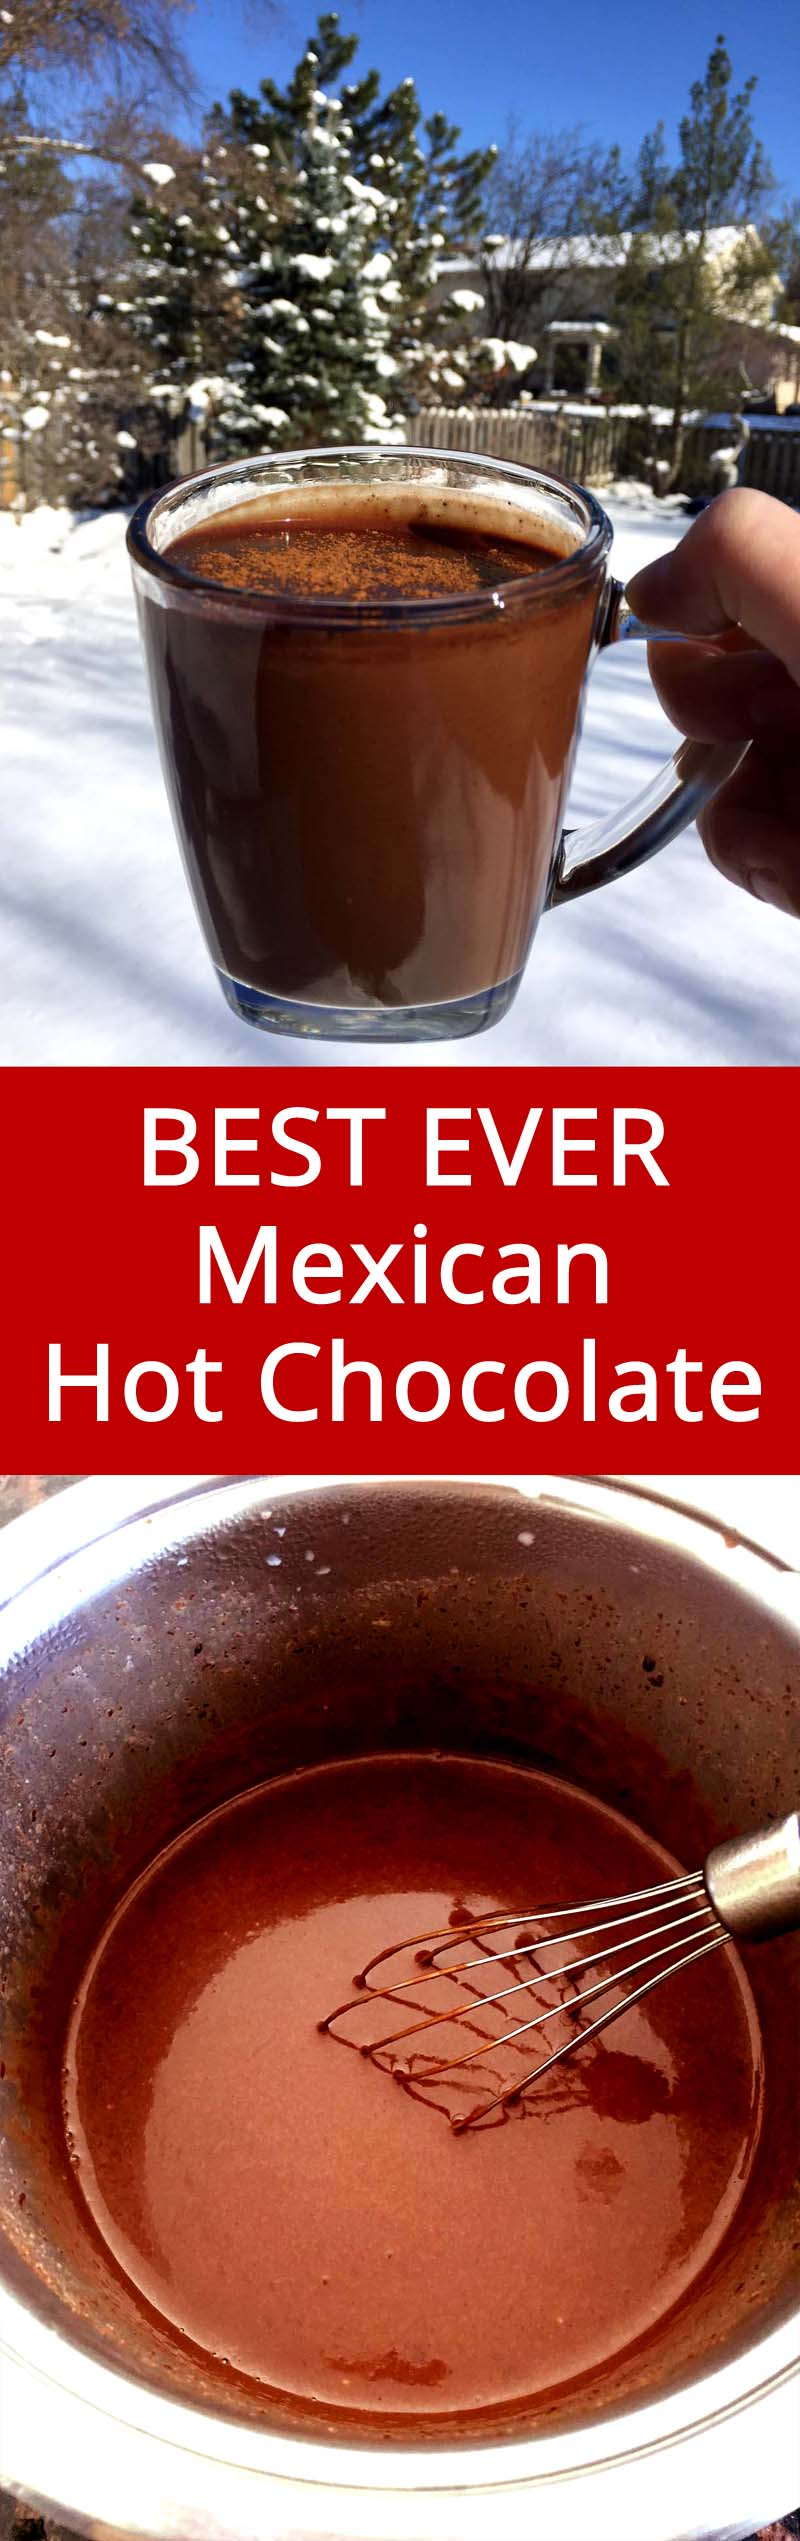 This Mexican hot chocolate is simply EPIC! This is the only Mexican hot chocolate recipe I'll ever need! #mexican #chocolate #hotchocolate #christmas